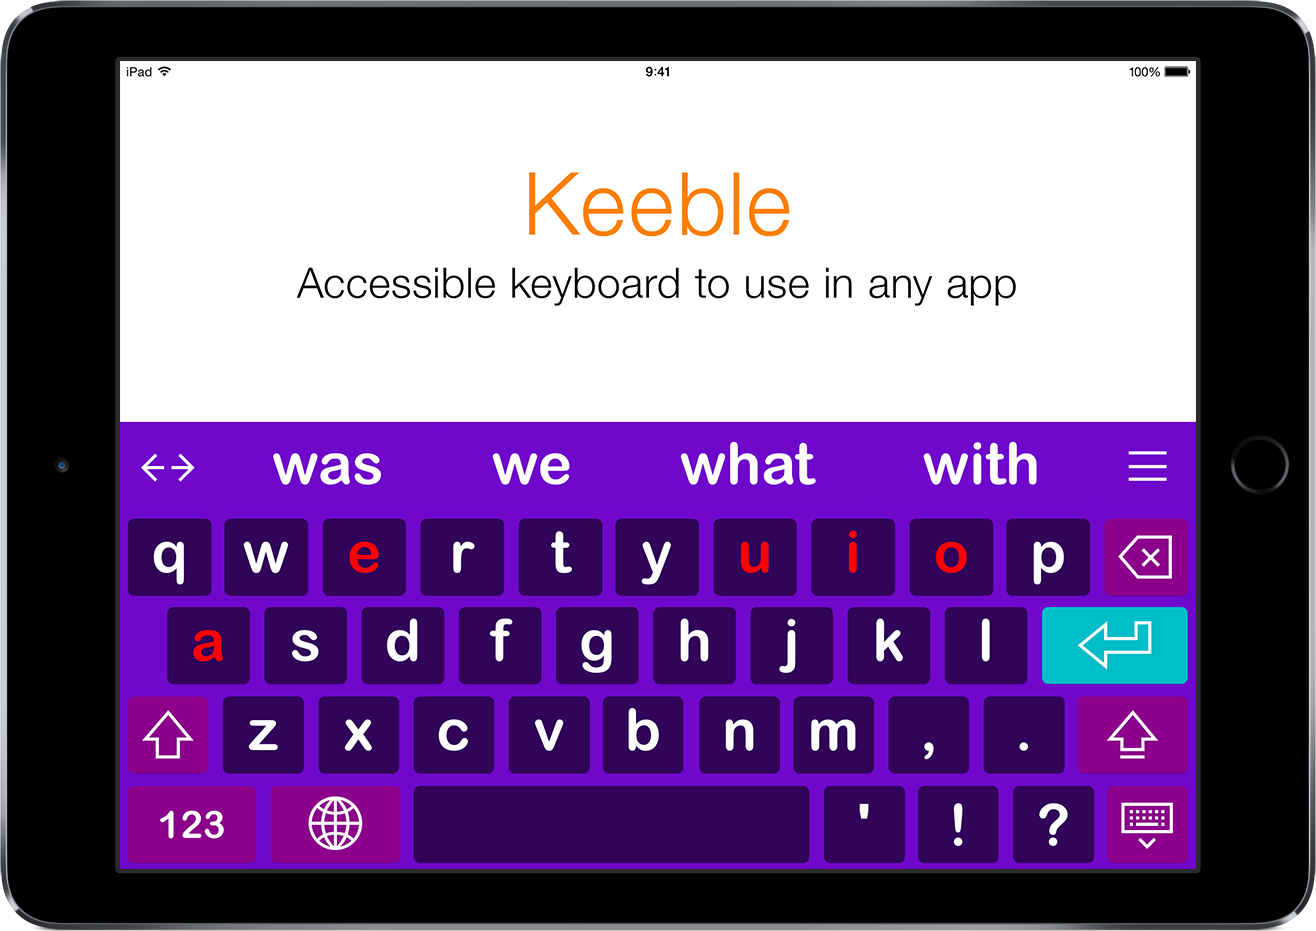 AssistiveWare's Keeble 3.0 makes typing more accessible on iOS Image